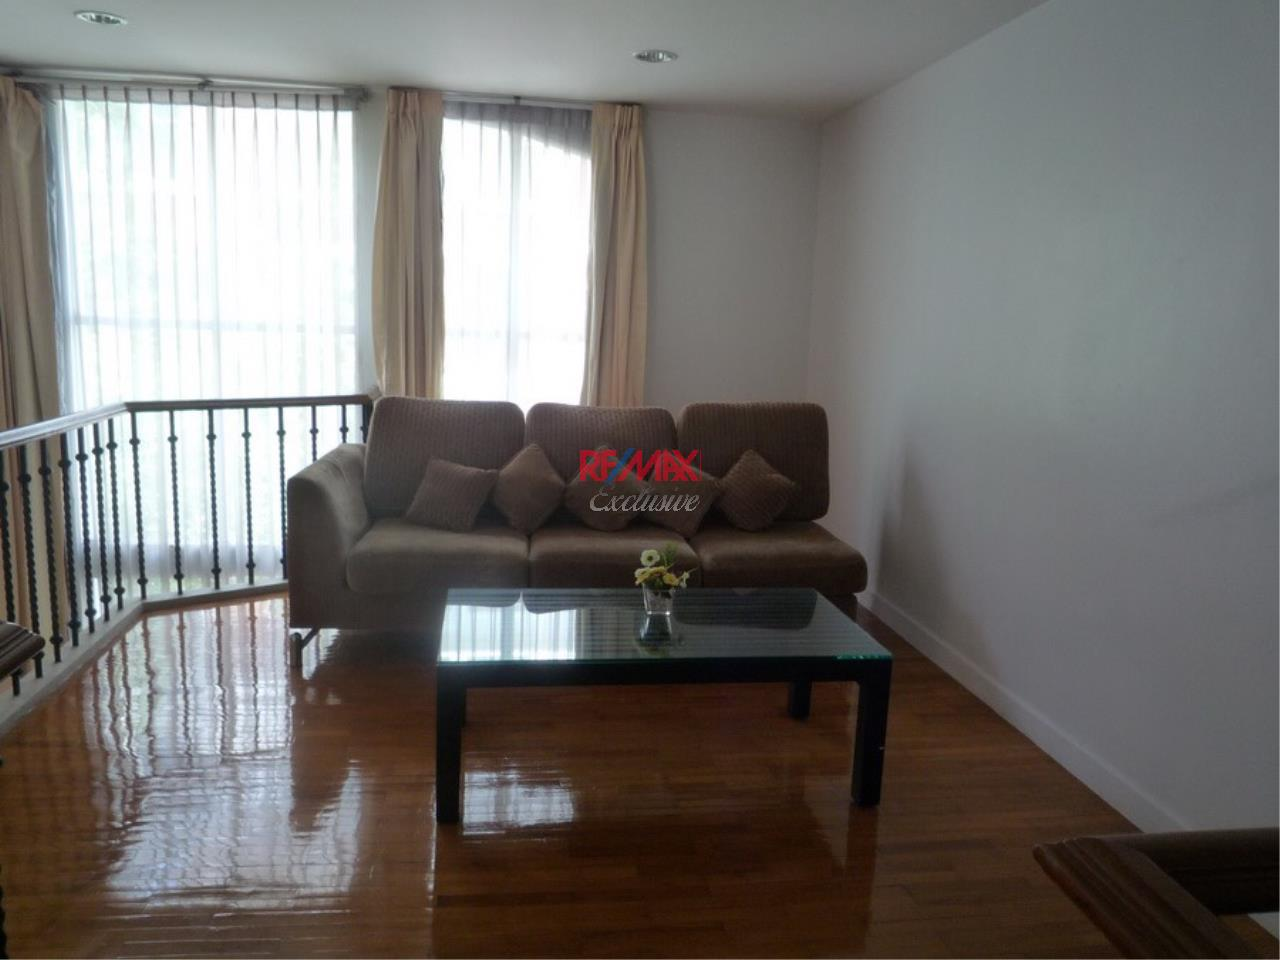 RE/MAX Exclusive Agency's Baan Klang Krung Thonglor 4 Bedrooms, 350 SQM., For Rent! 5